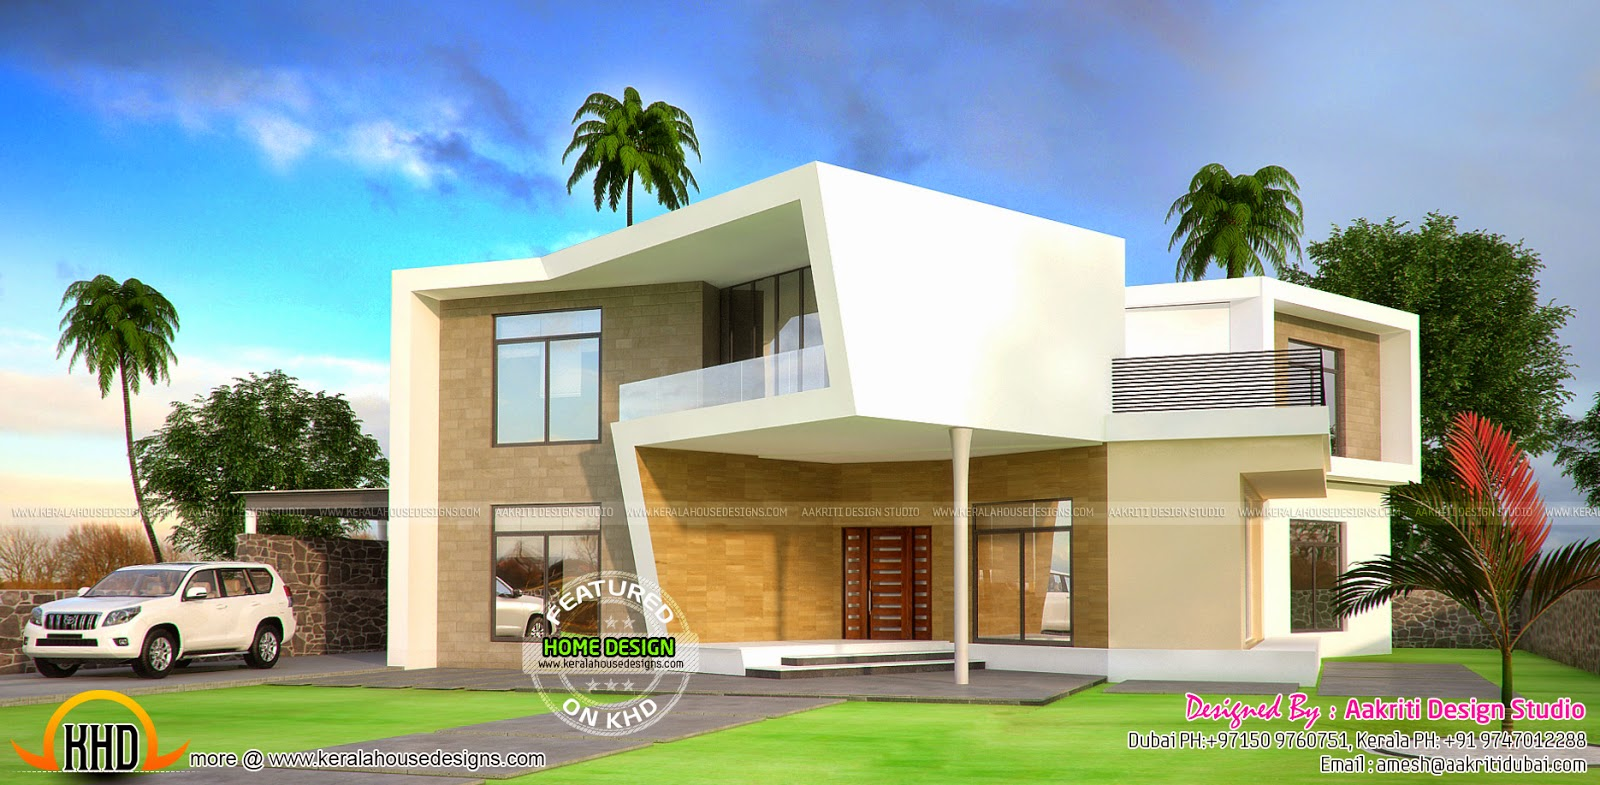 New concept house plan kerala home design and floor plans for Home designs com